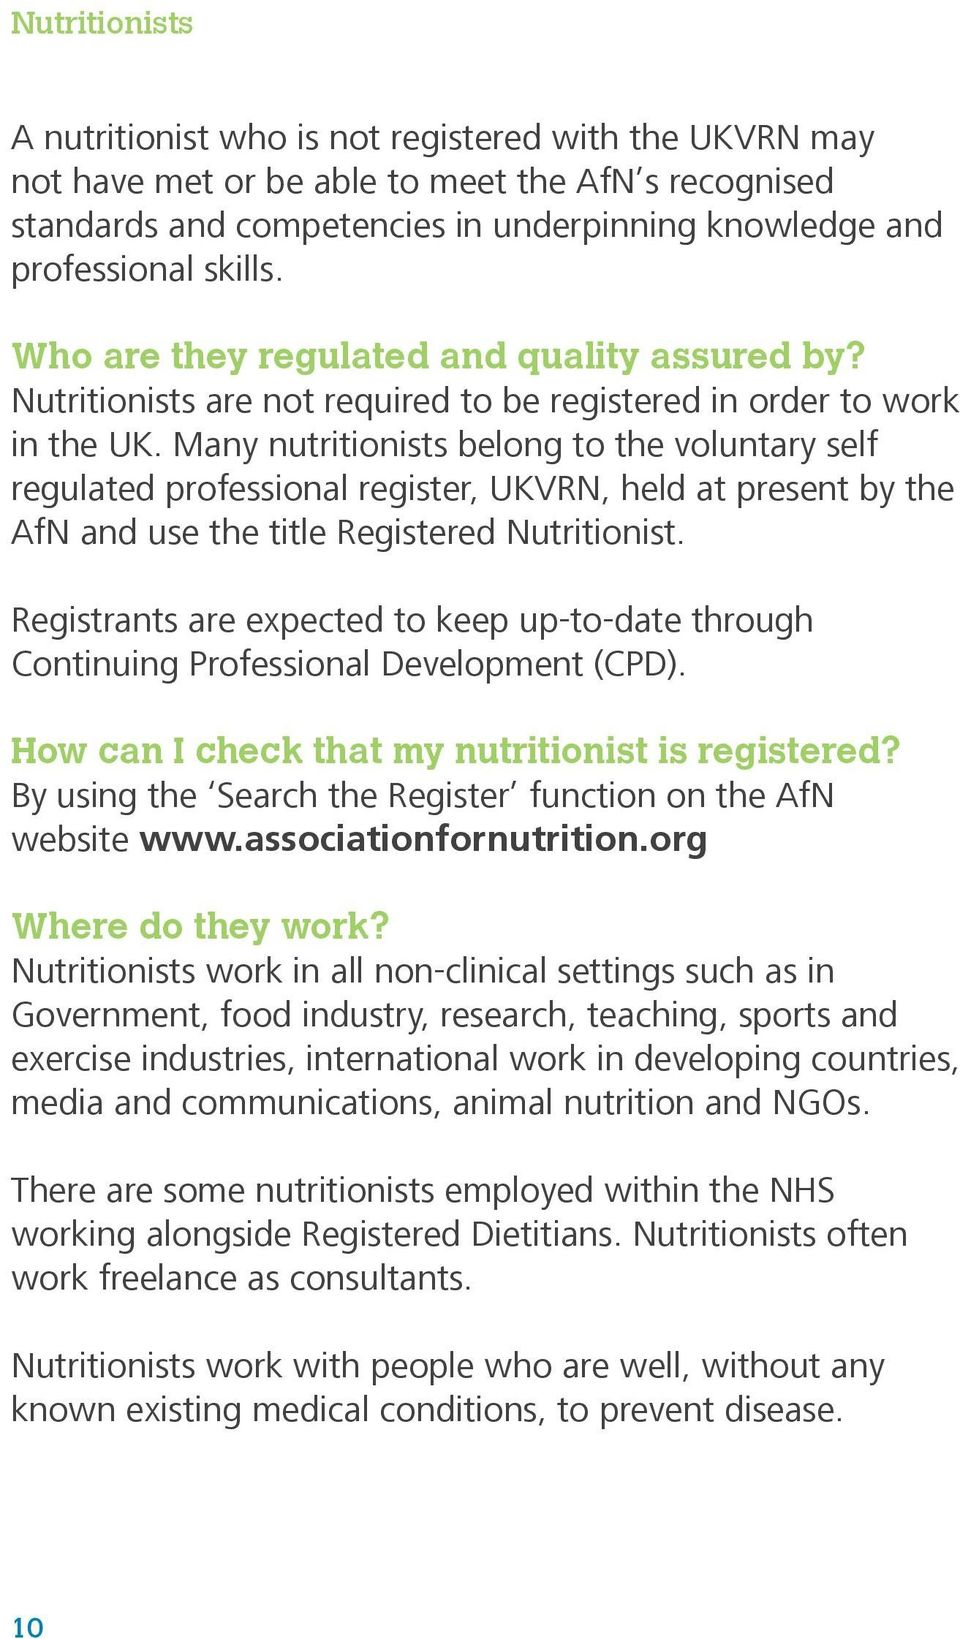 Many nutritionists belong to the voluntary self regulated professional register, UKVRN, held at present by the AfN and use the title Registered Nutritionist.